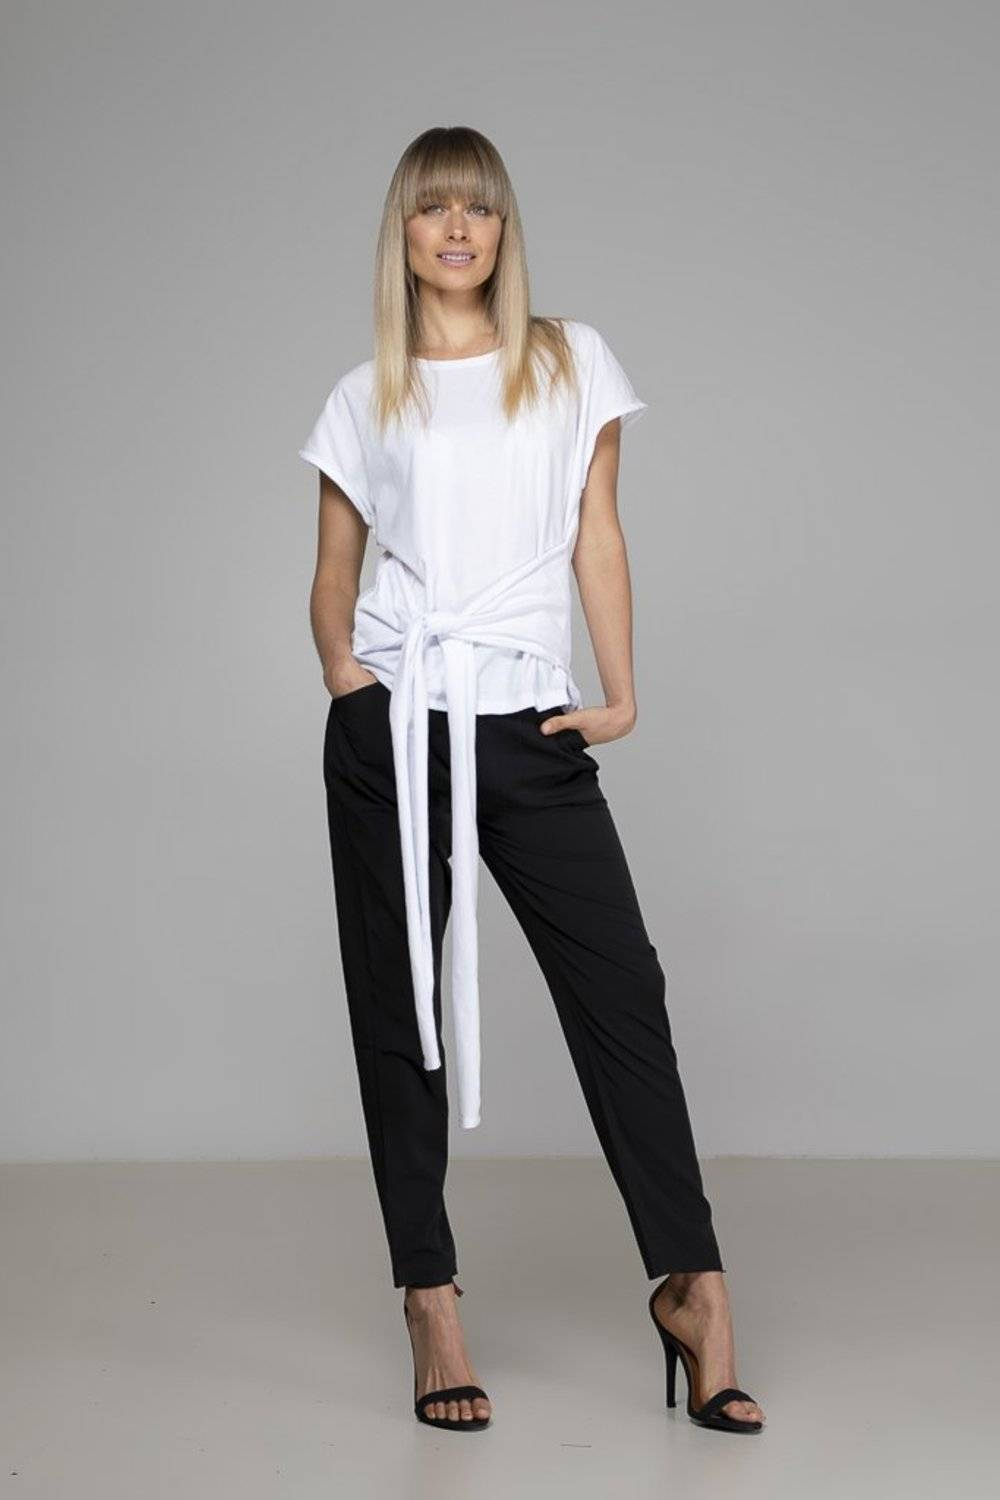 The White Tie Top from Indecisive is a soft organic cotton tee that blurs the line between casual & sophisticated with its feature waist tie.